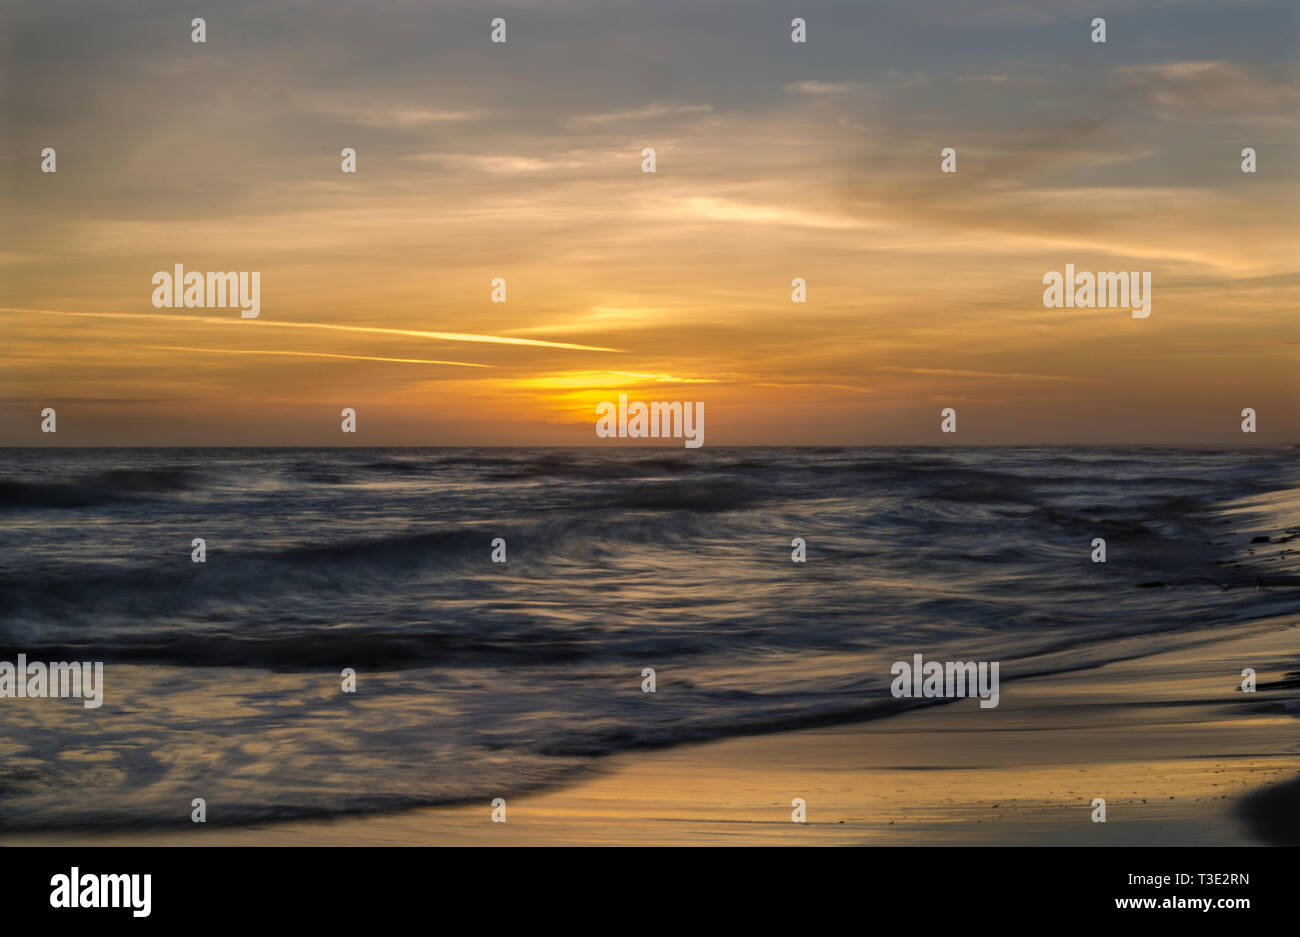 The sun sets on Dauphin Island's west end, Nov. 5, 2013. - Stock Image